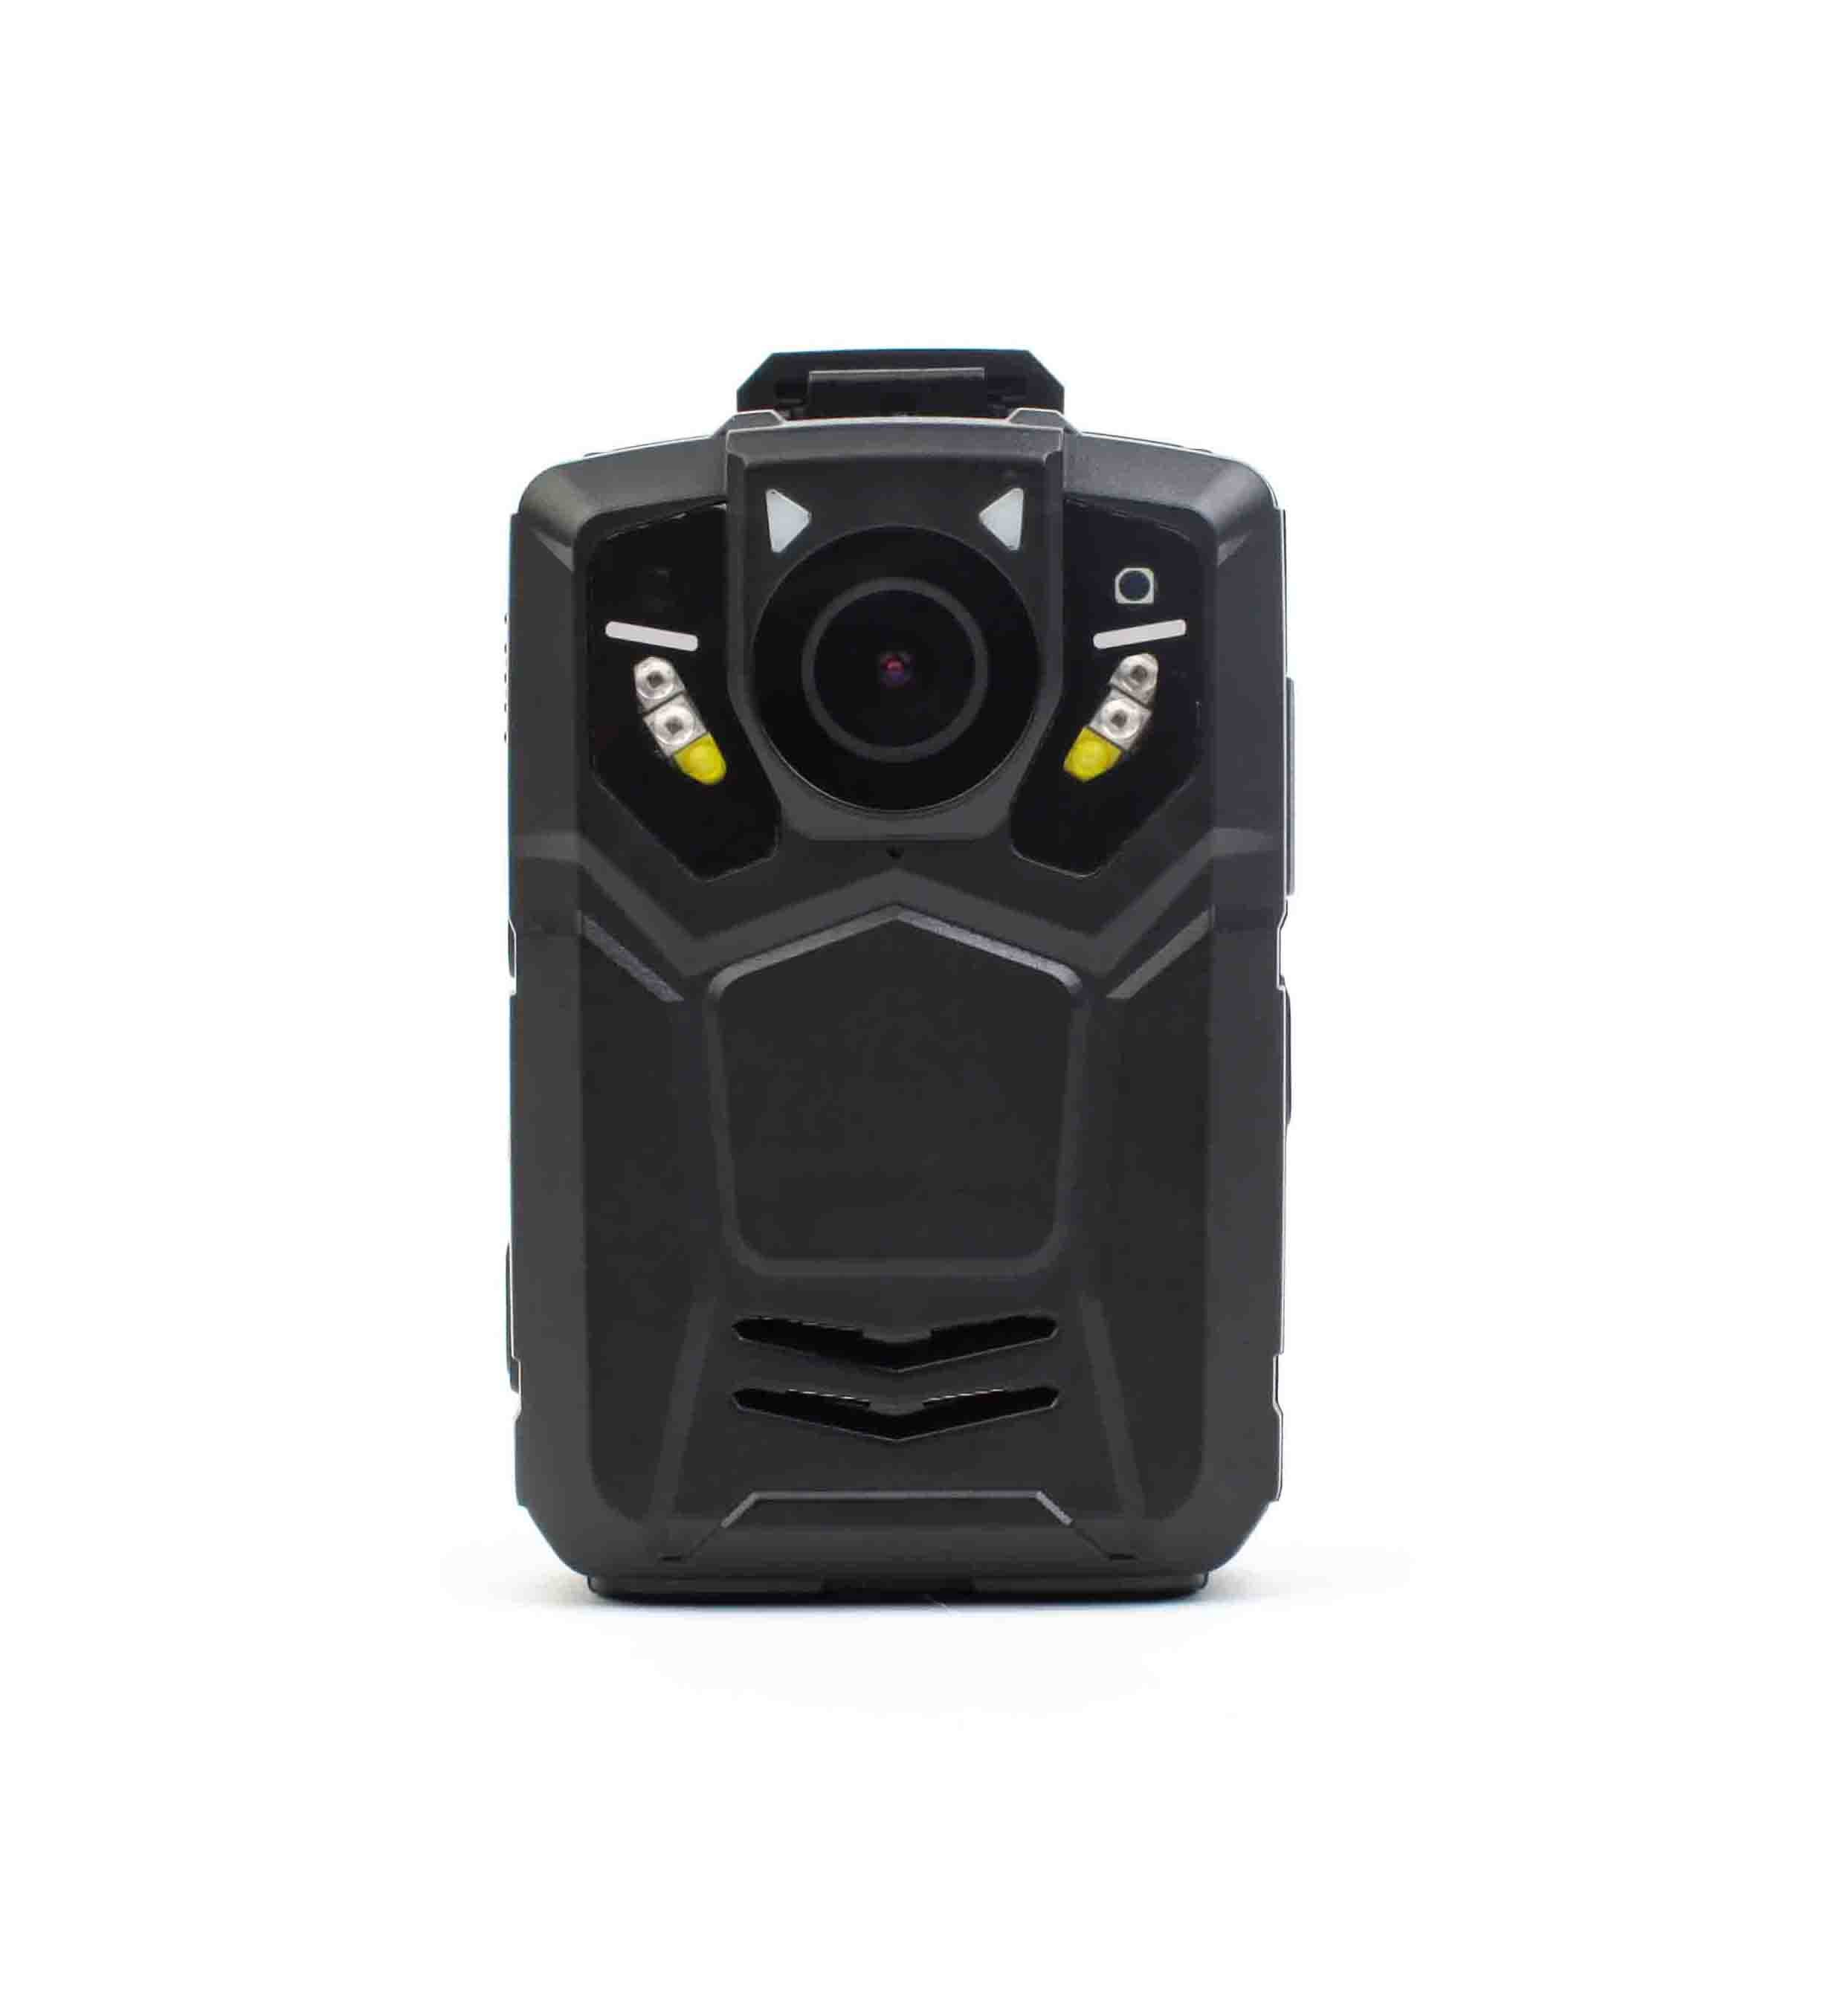 WiFi High Defination Body Worn Camera 4G pictures & photos